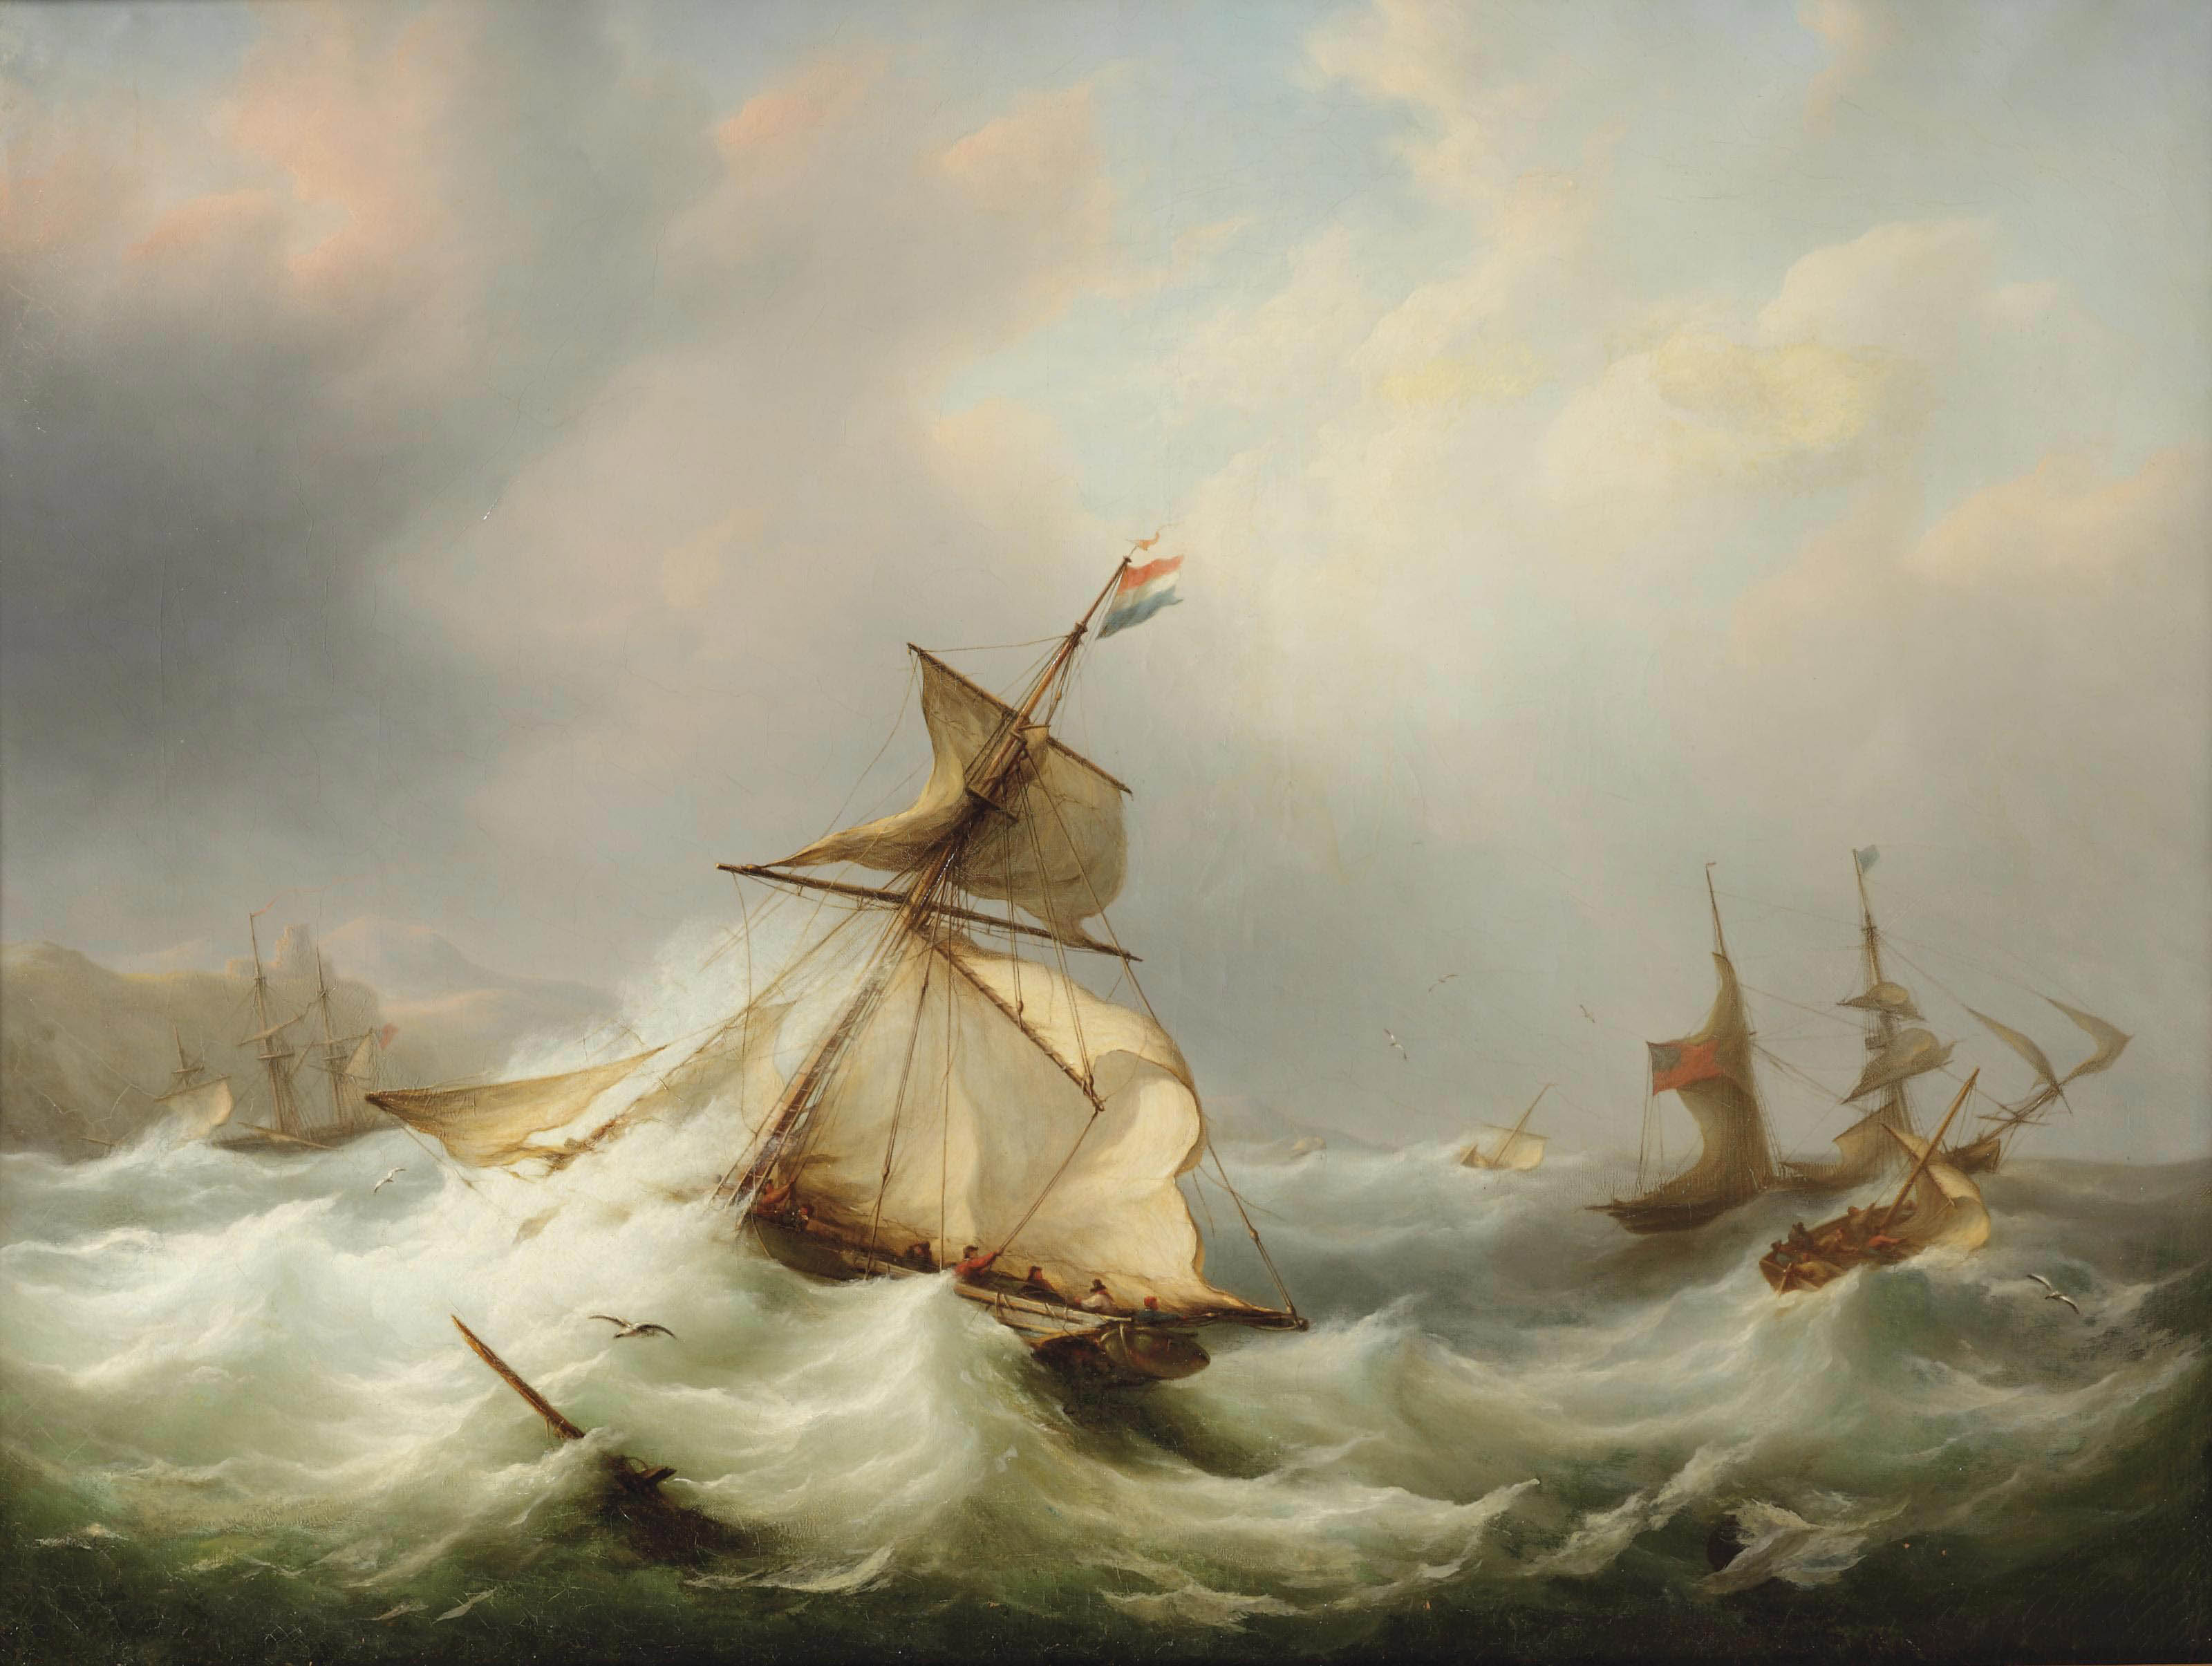 Dutch and British vessels caught in rough seas